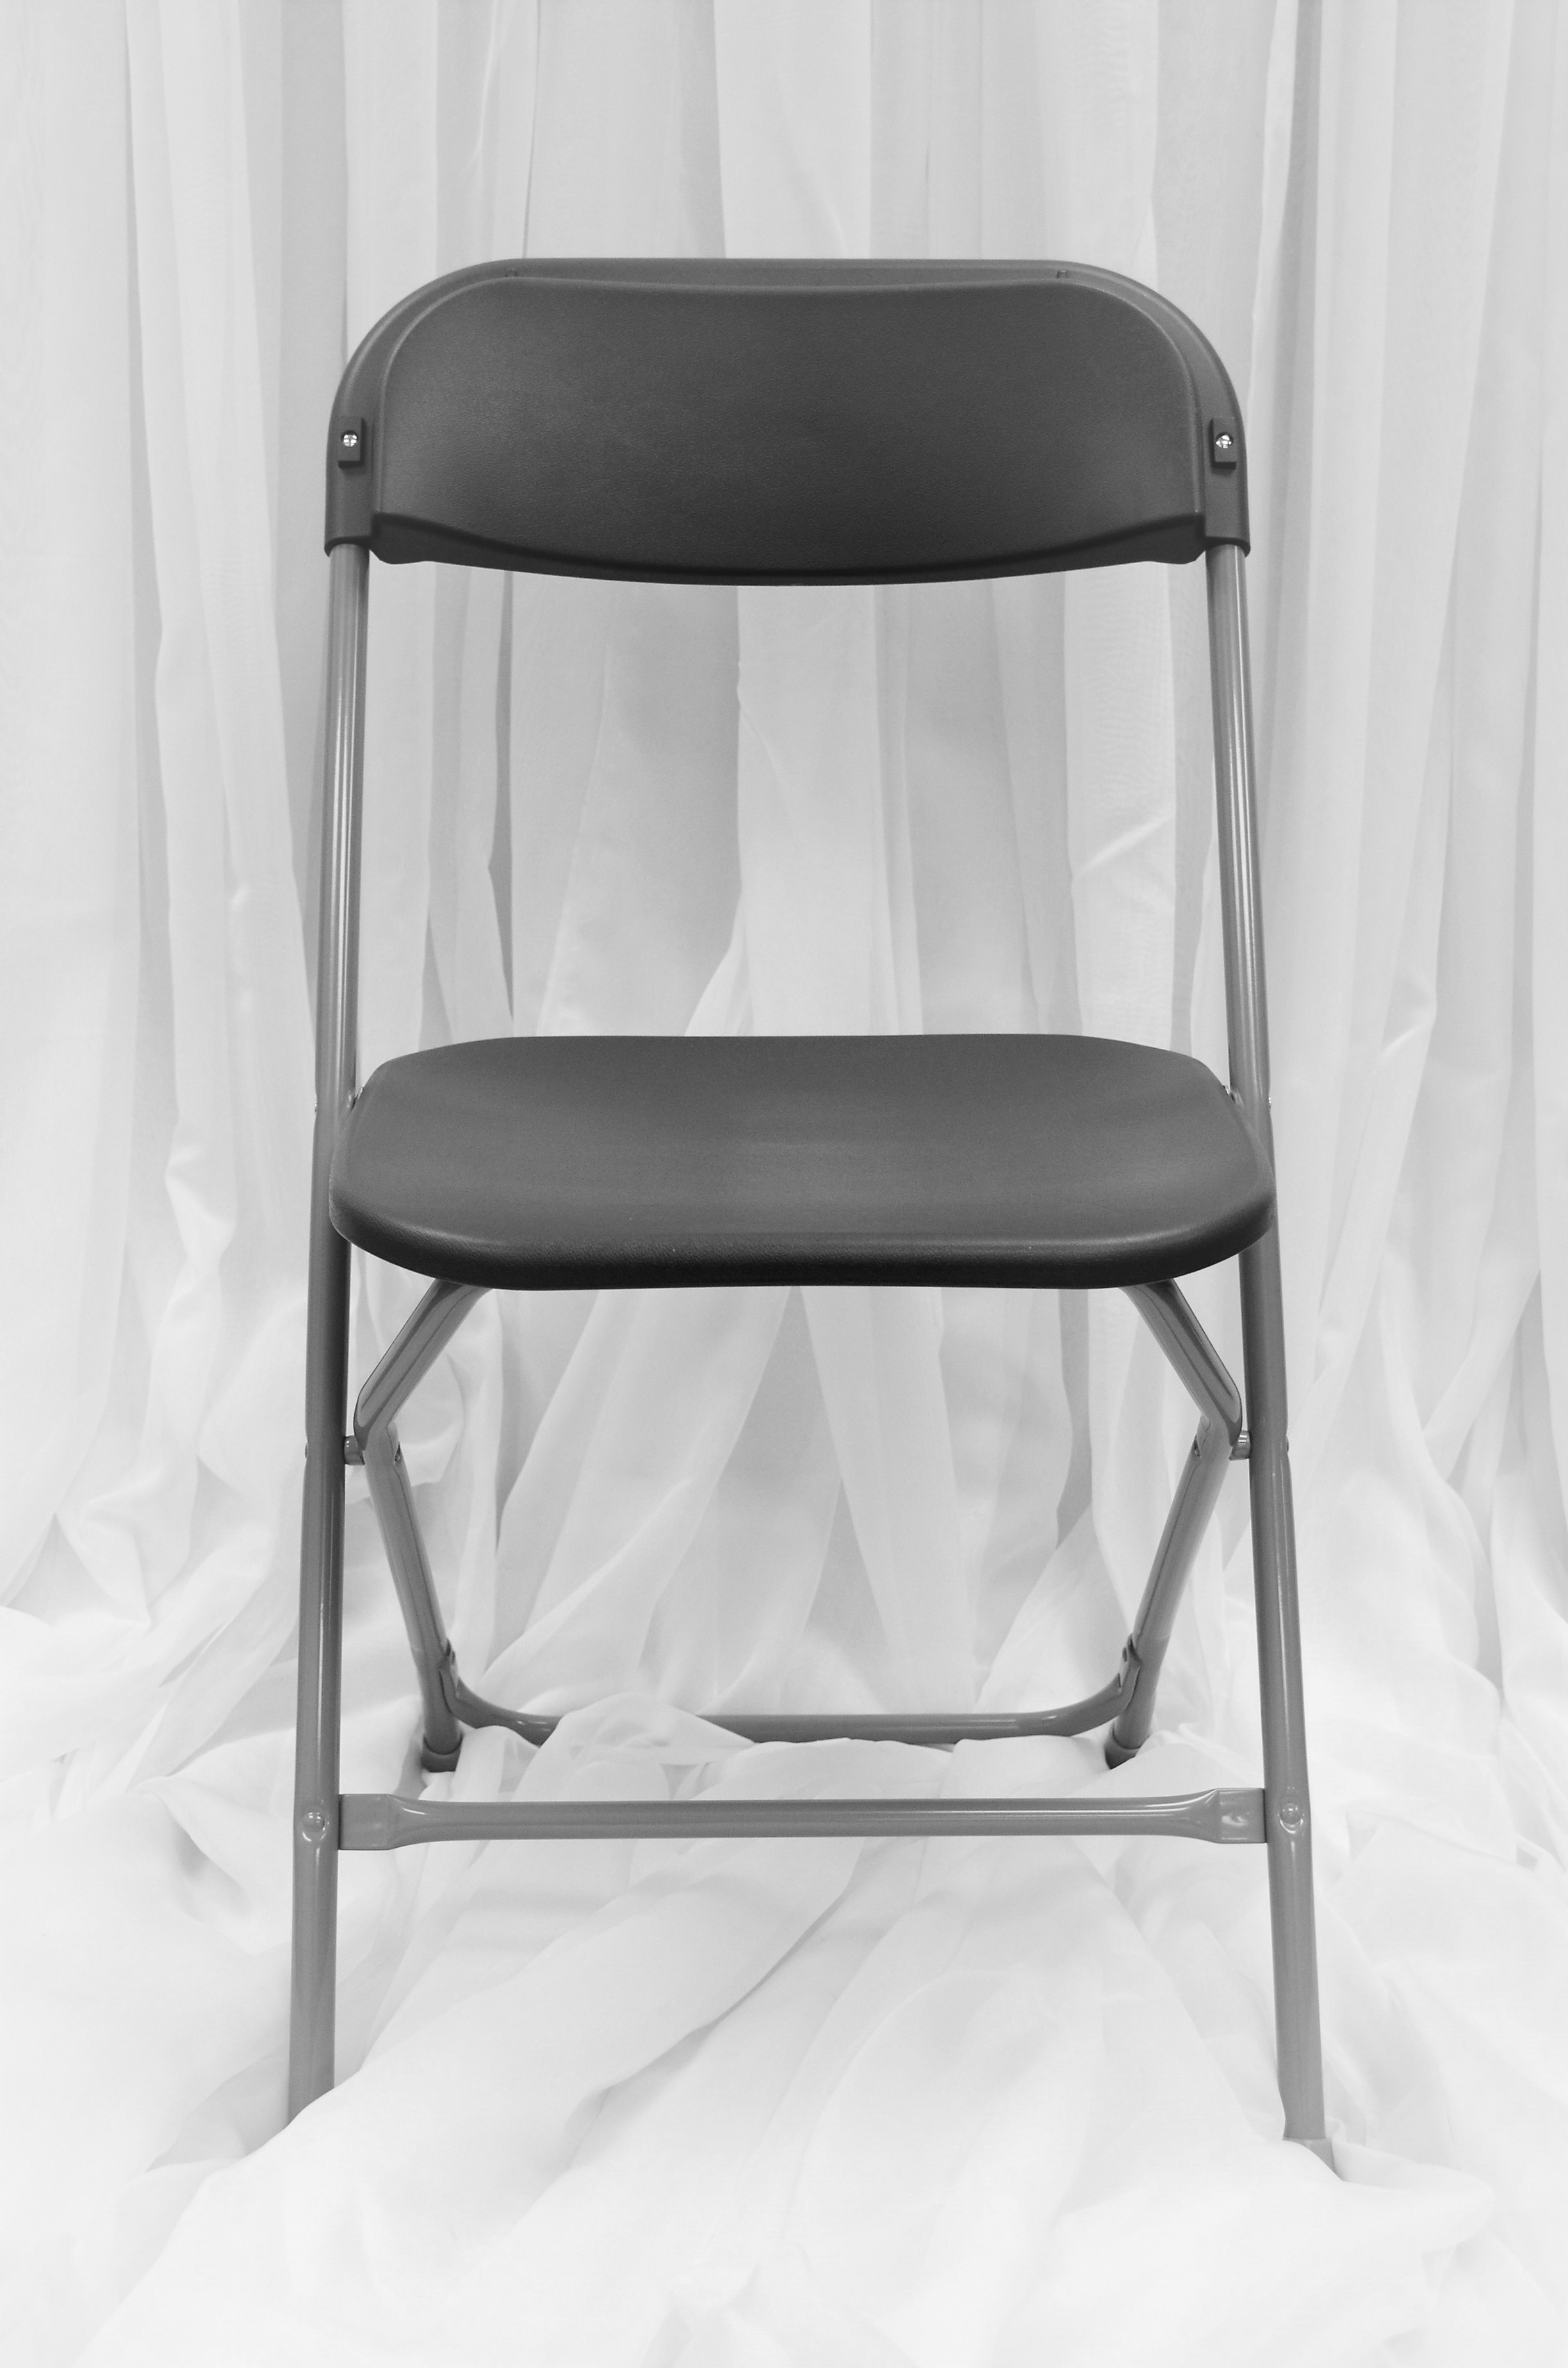 Fantastic Party Event Chair Rentals Rent Folding Chairs From Gervais Dailytribune Chair Design For Home Dailytribuneorg